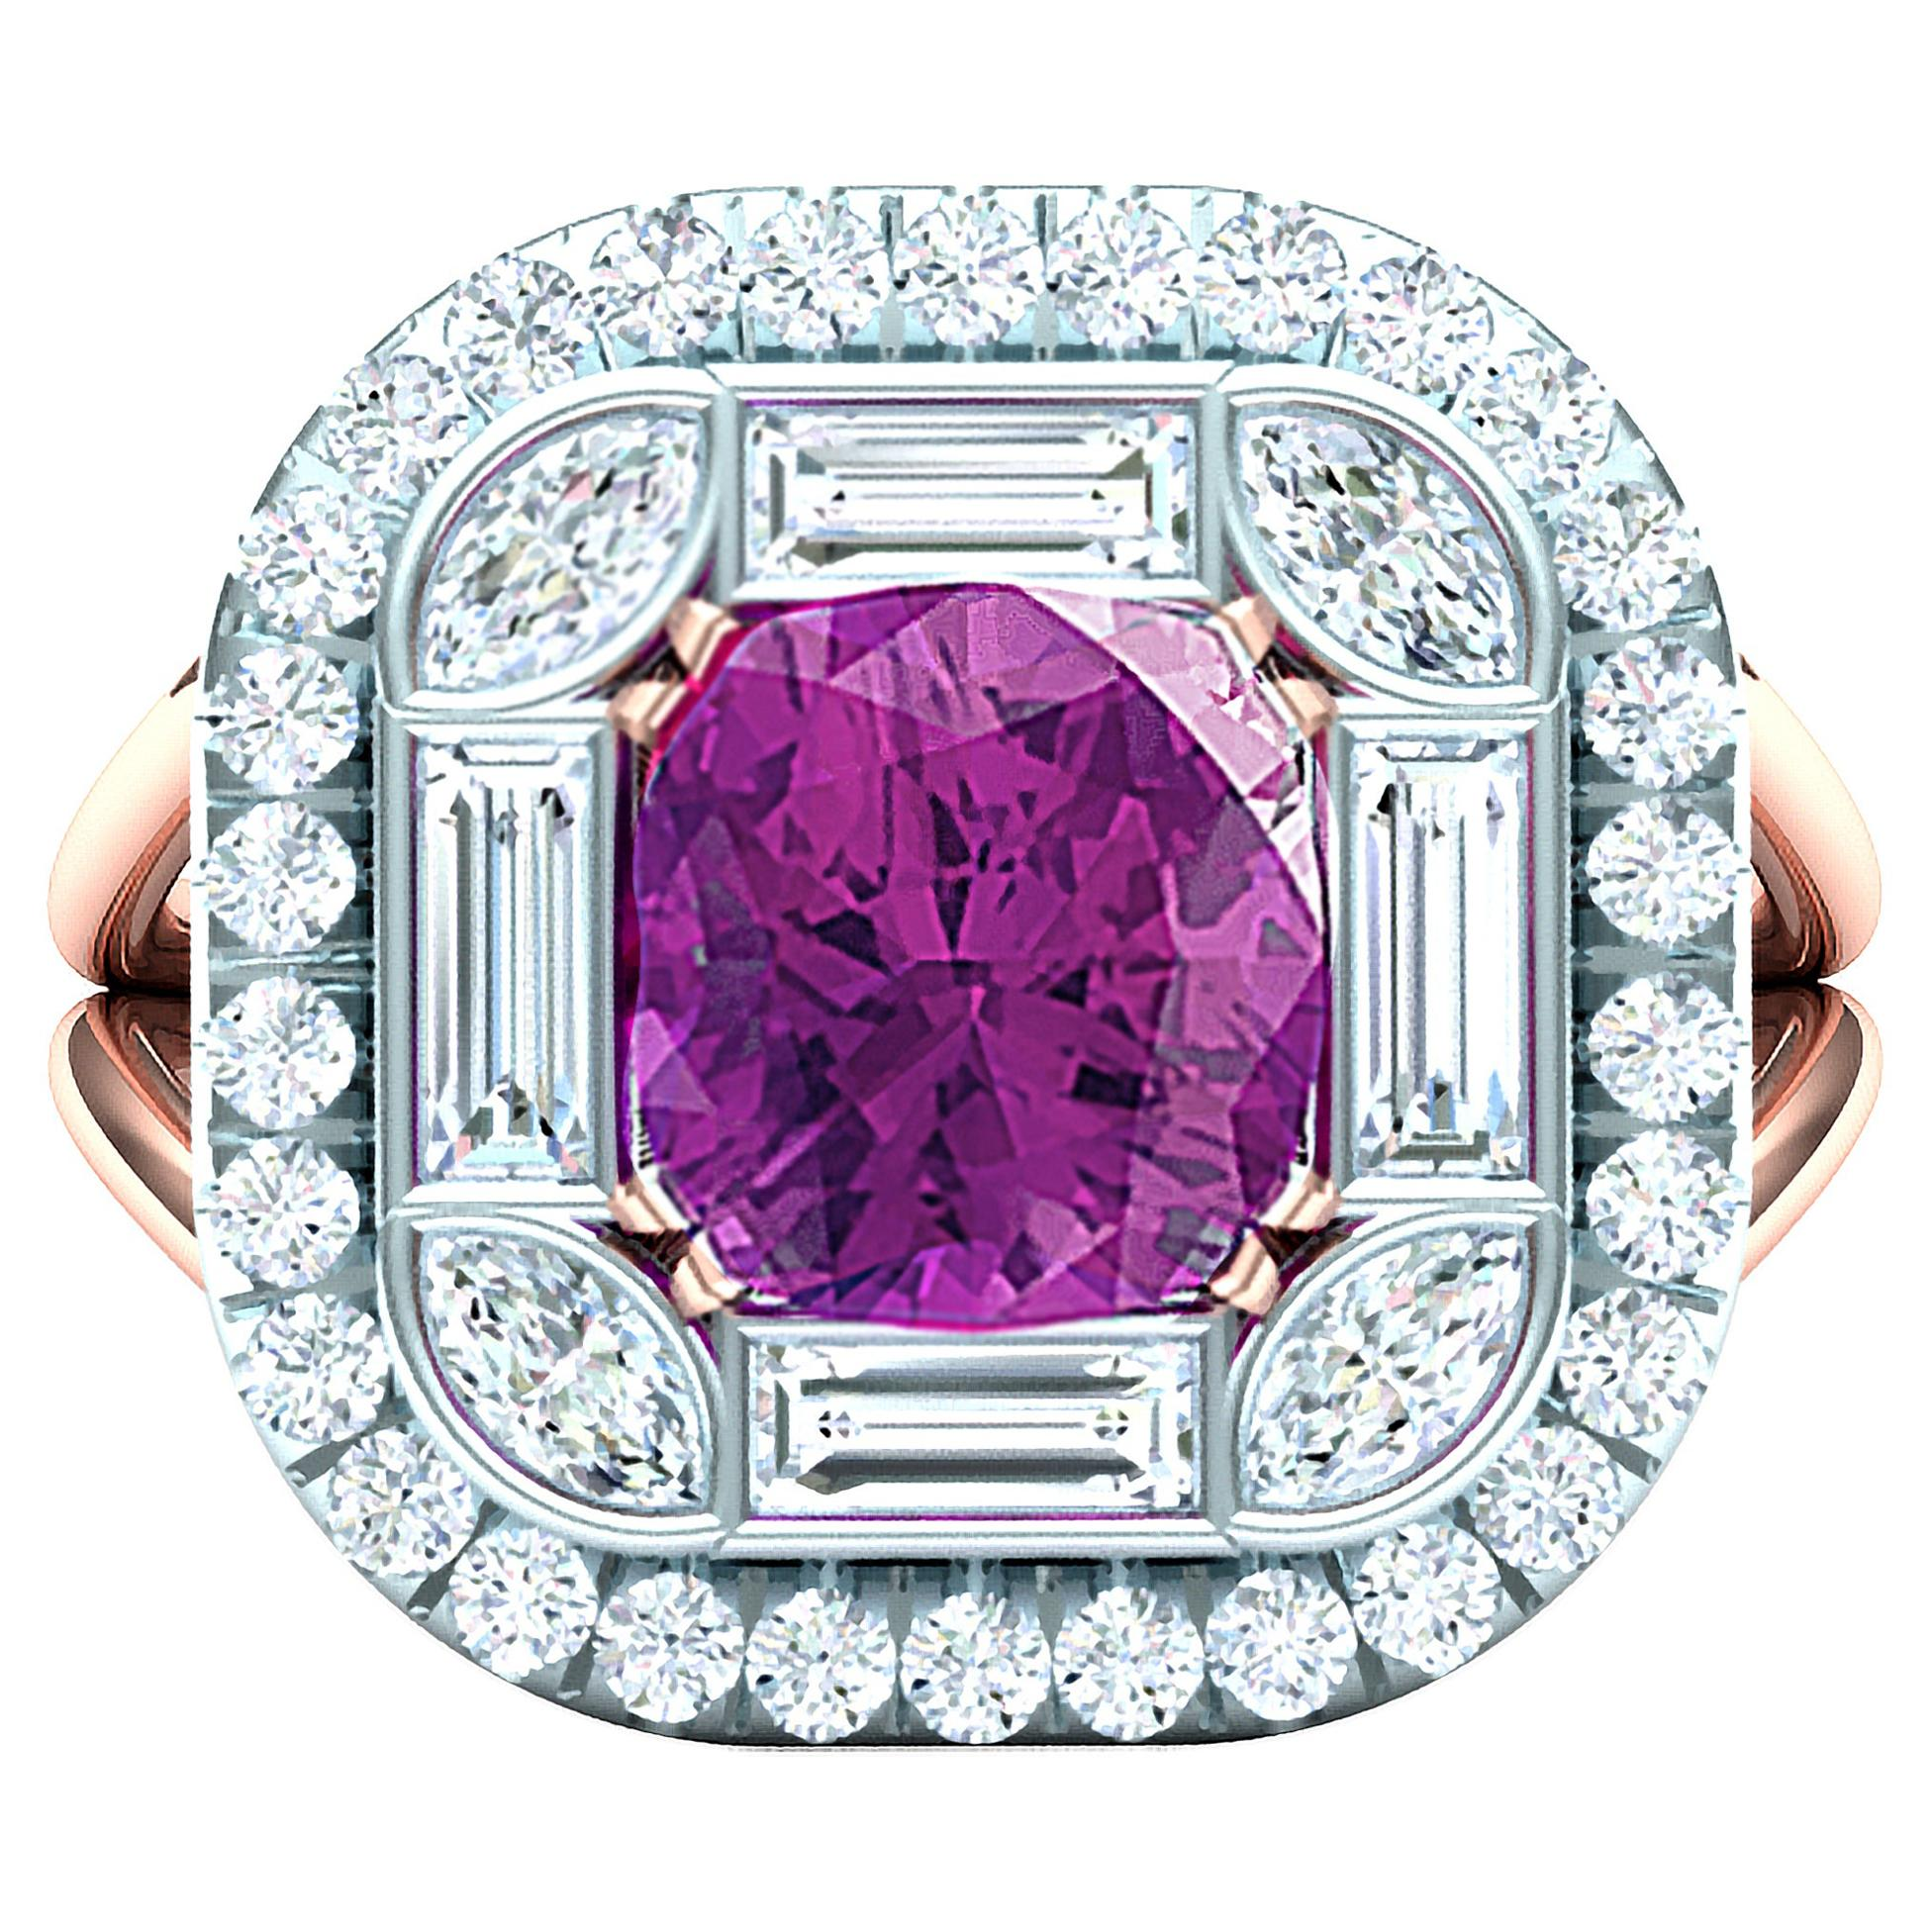 2 Carat Purplish Pink Cushion Cut Sapphire Diamond Cocktail Ring